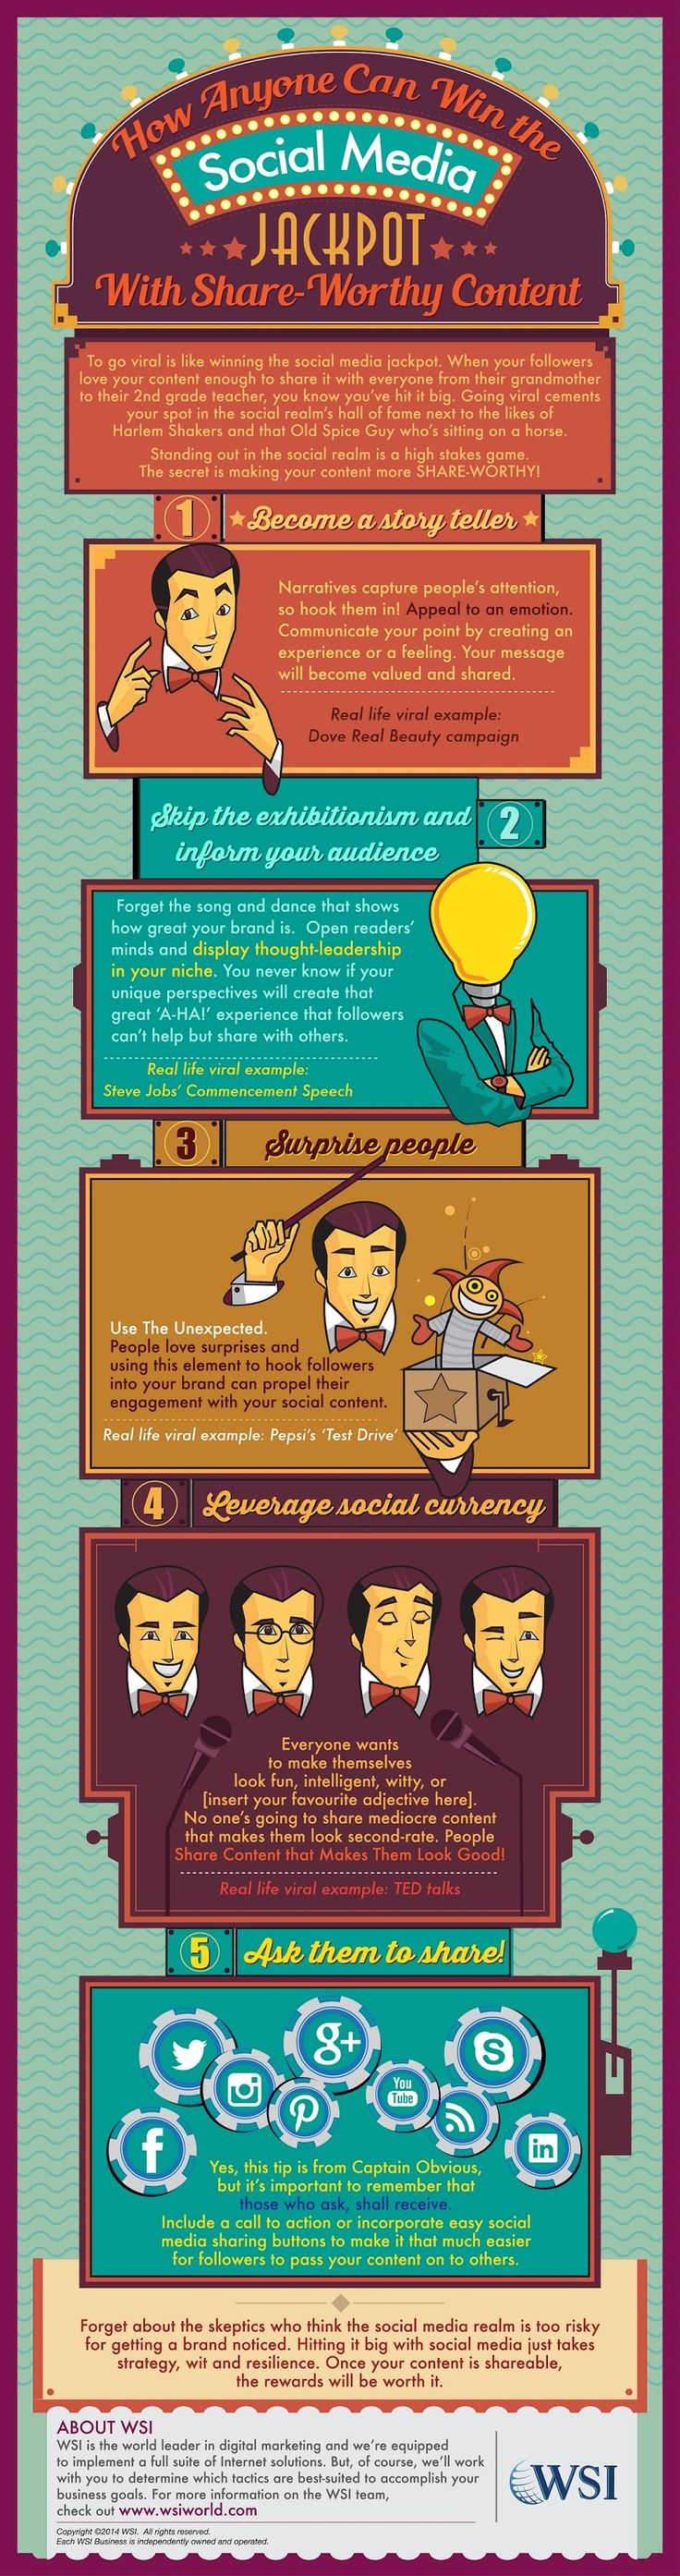 How To Win The Social Media Jackpot With Share-Worthy Content - #contentmarketing #socialmedia #infographic